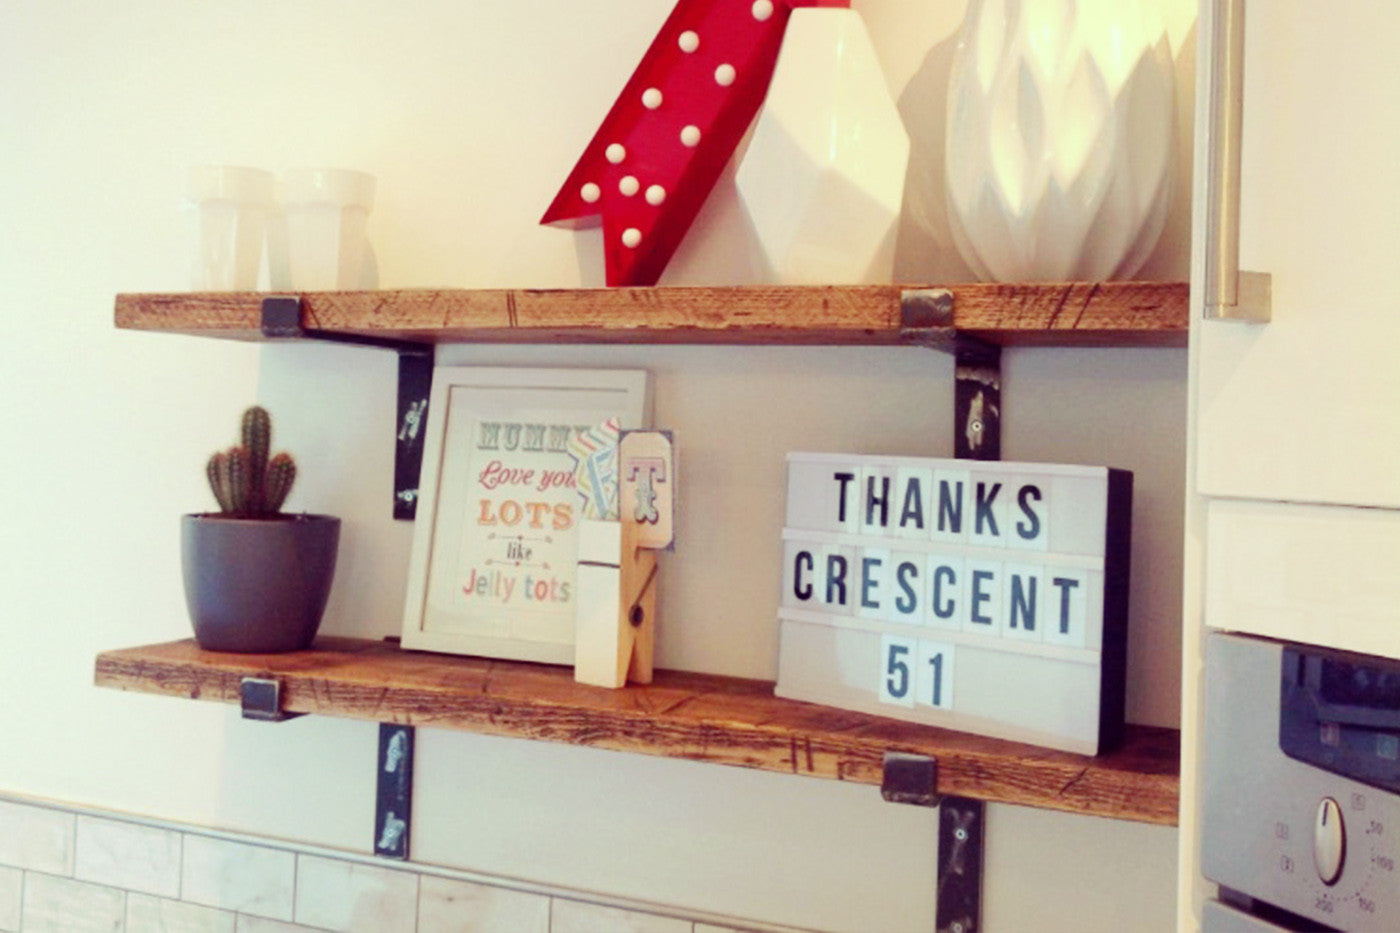 Industrial Kitchen Shelves - Crescent Fifty One